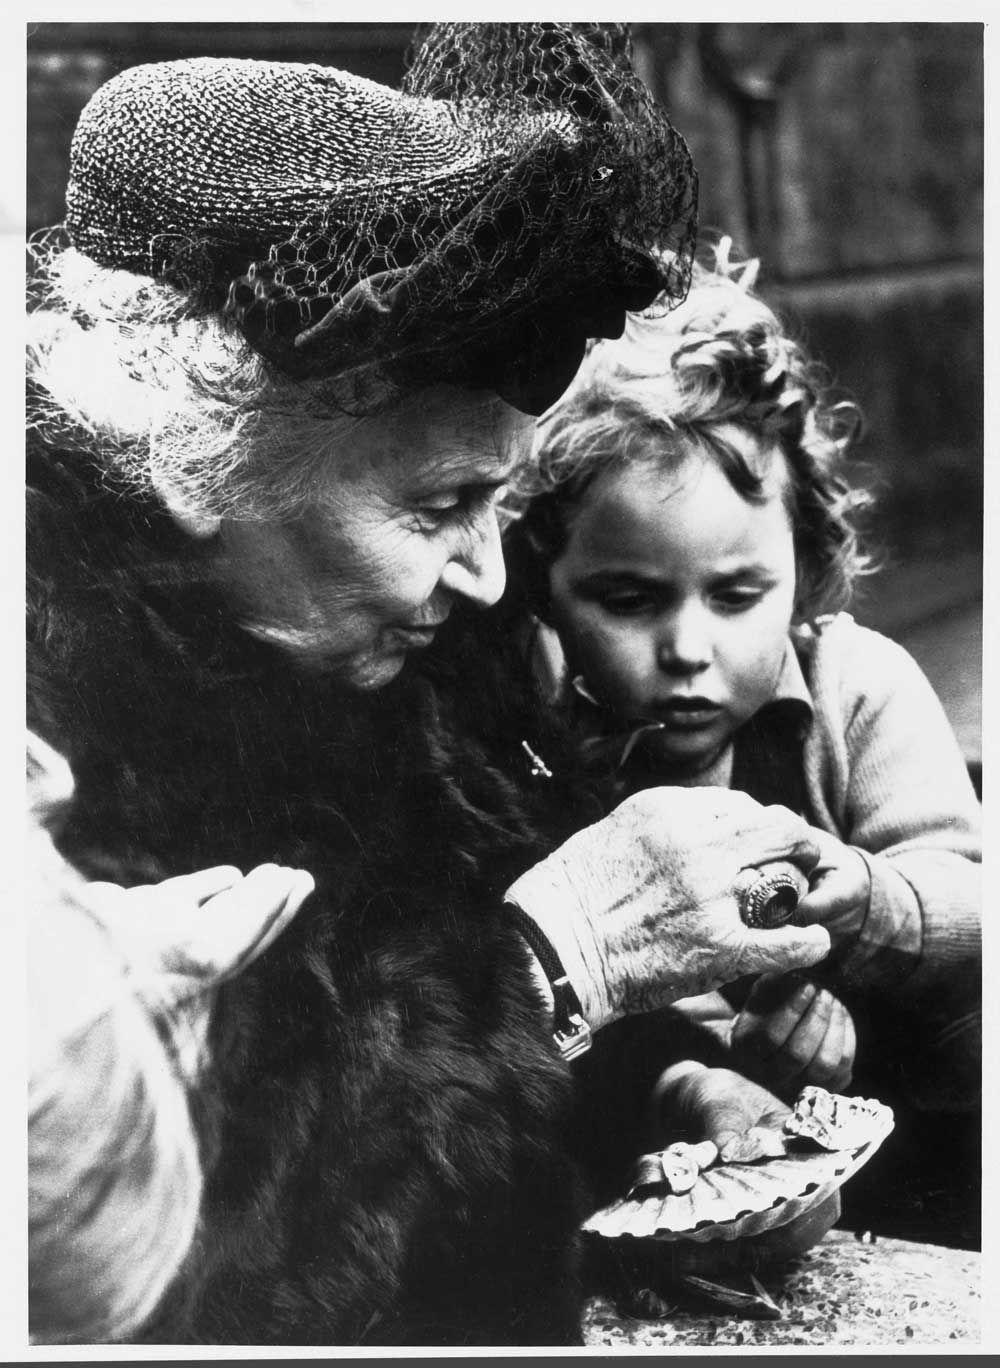 Maria Montessori was an educator, philosopher, physician, scientist, educator and volunteer Italian, known for the method that bears his name, used in thousands of kindergartens, primary and secondary schools around the world.